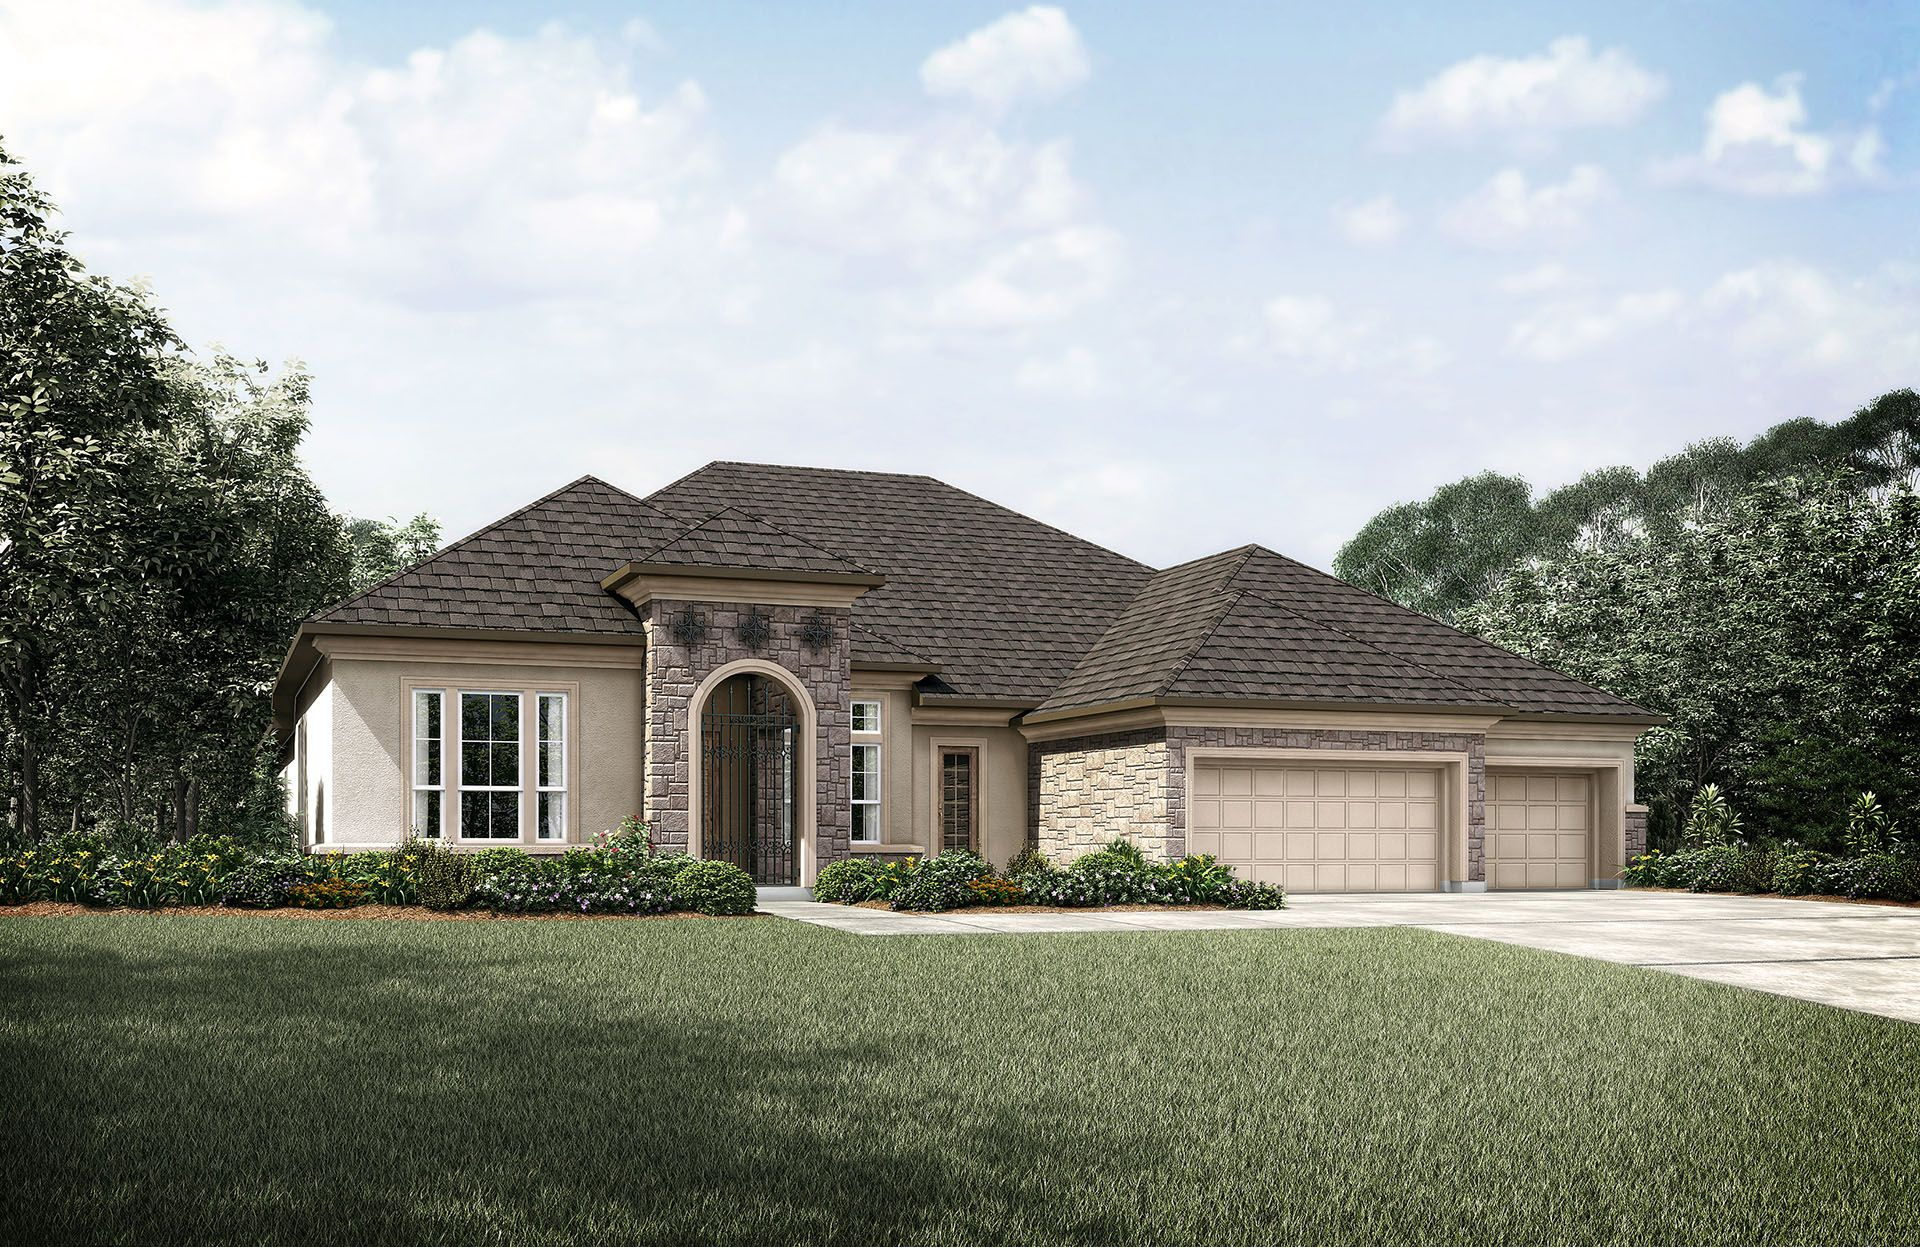 Single Family for Active at Harper's Preserve - Lauren Iv Model Home Coming Soon! Conroe, Texas 77385 United States